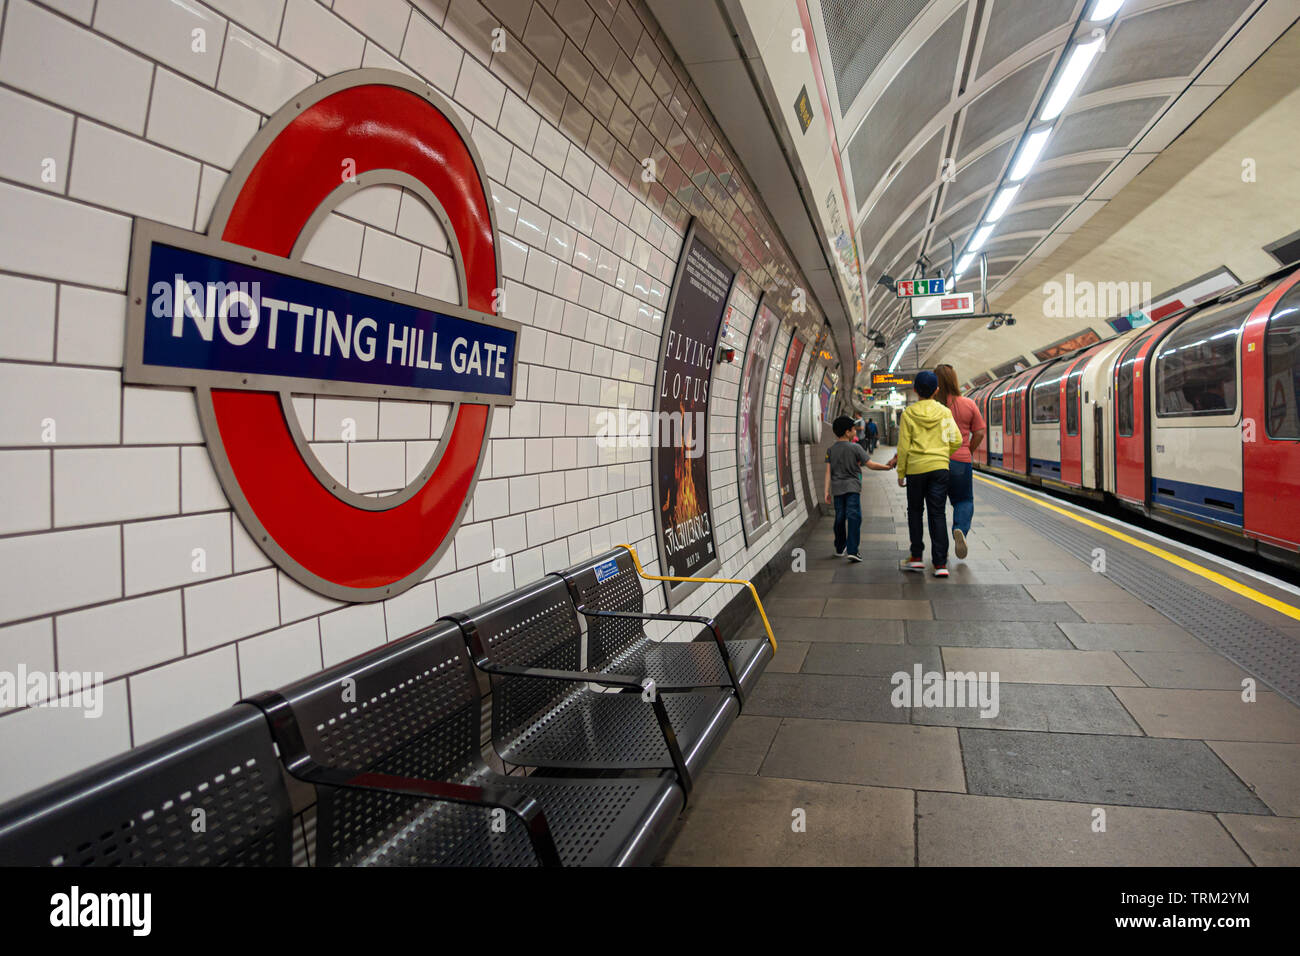 A mother and her son walk down the platform at Notting Hill Gate London Underground platform having arrived on a train. - Stock Image